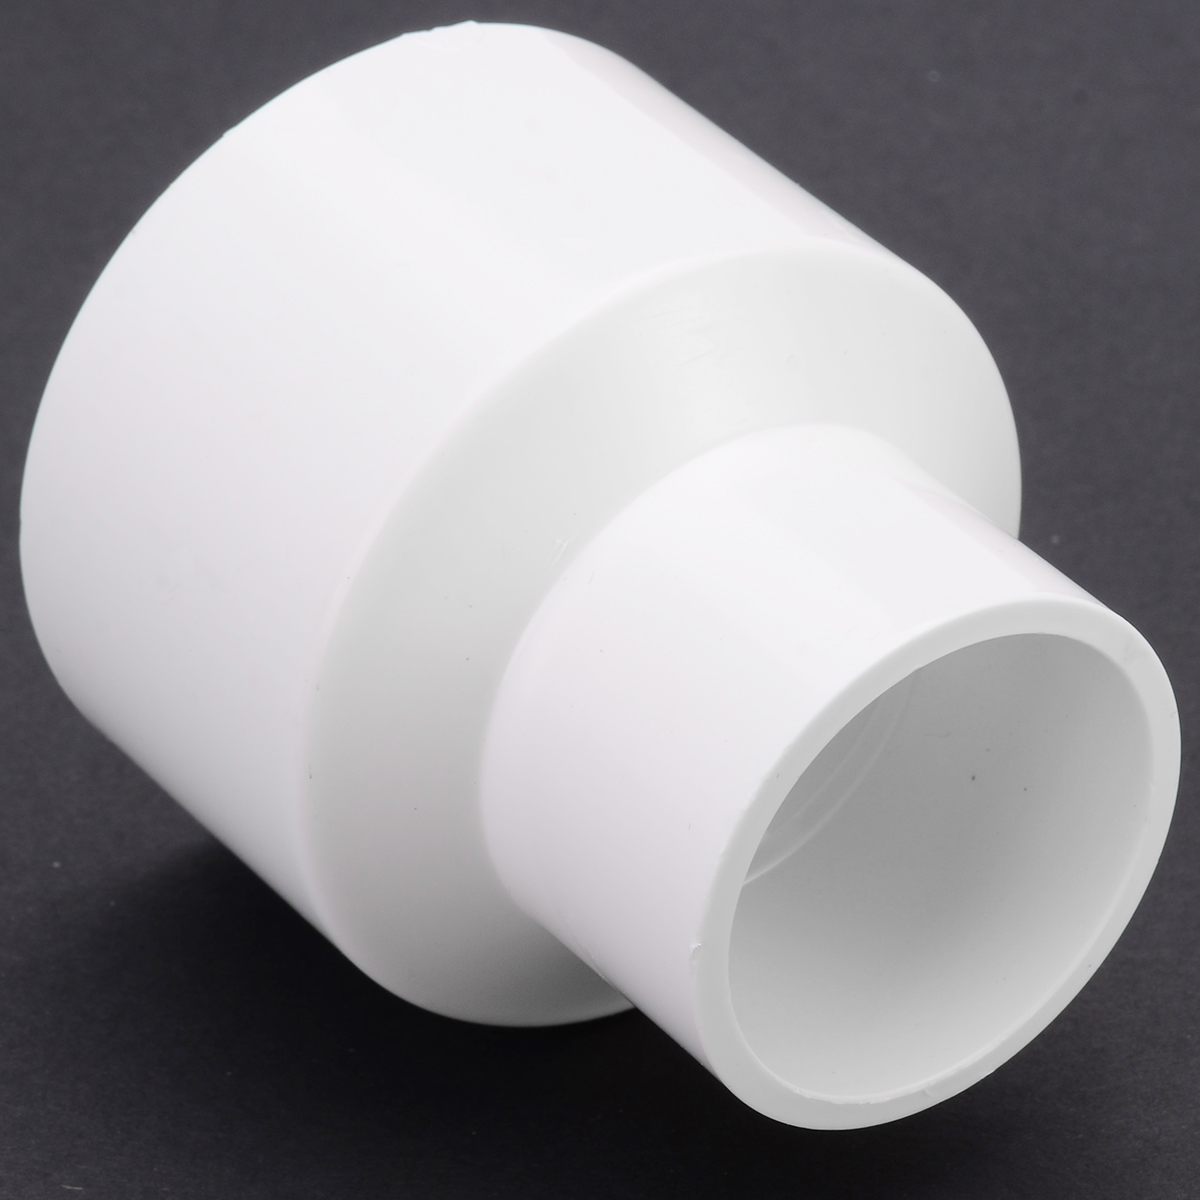 1Pcs PVC Woodworking Reducer Adaptor 50mm To 32mm For Dust Collector For Woodworking Power Tool